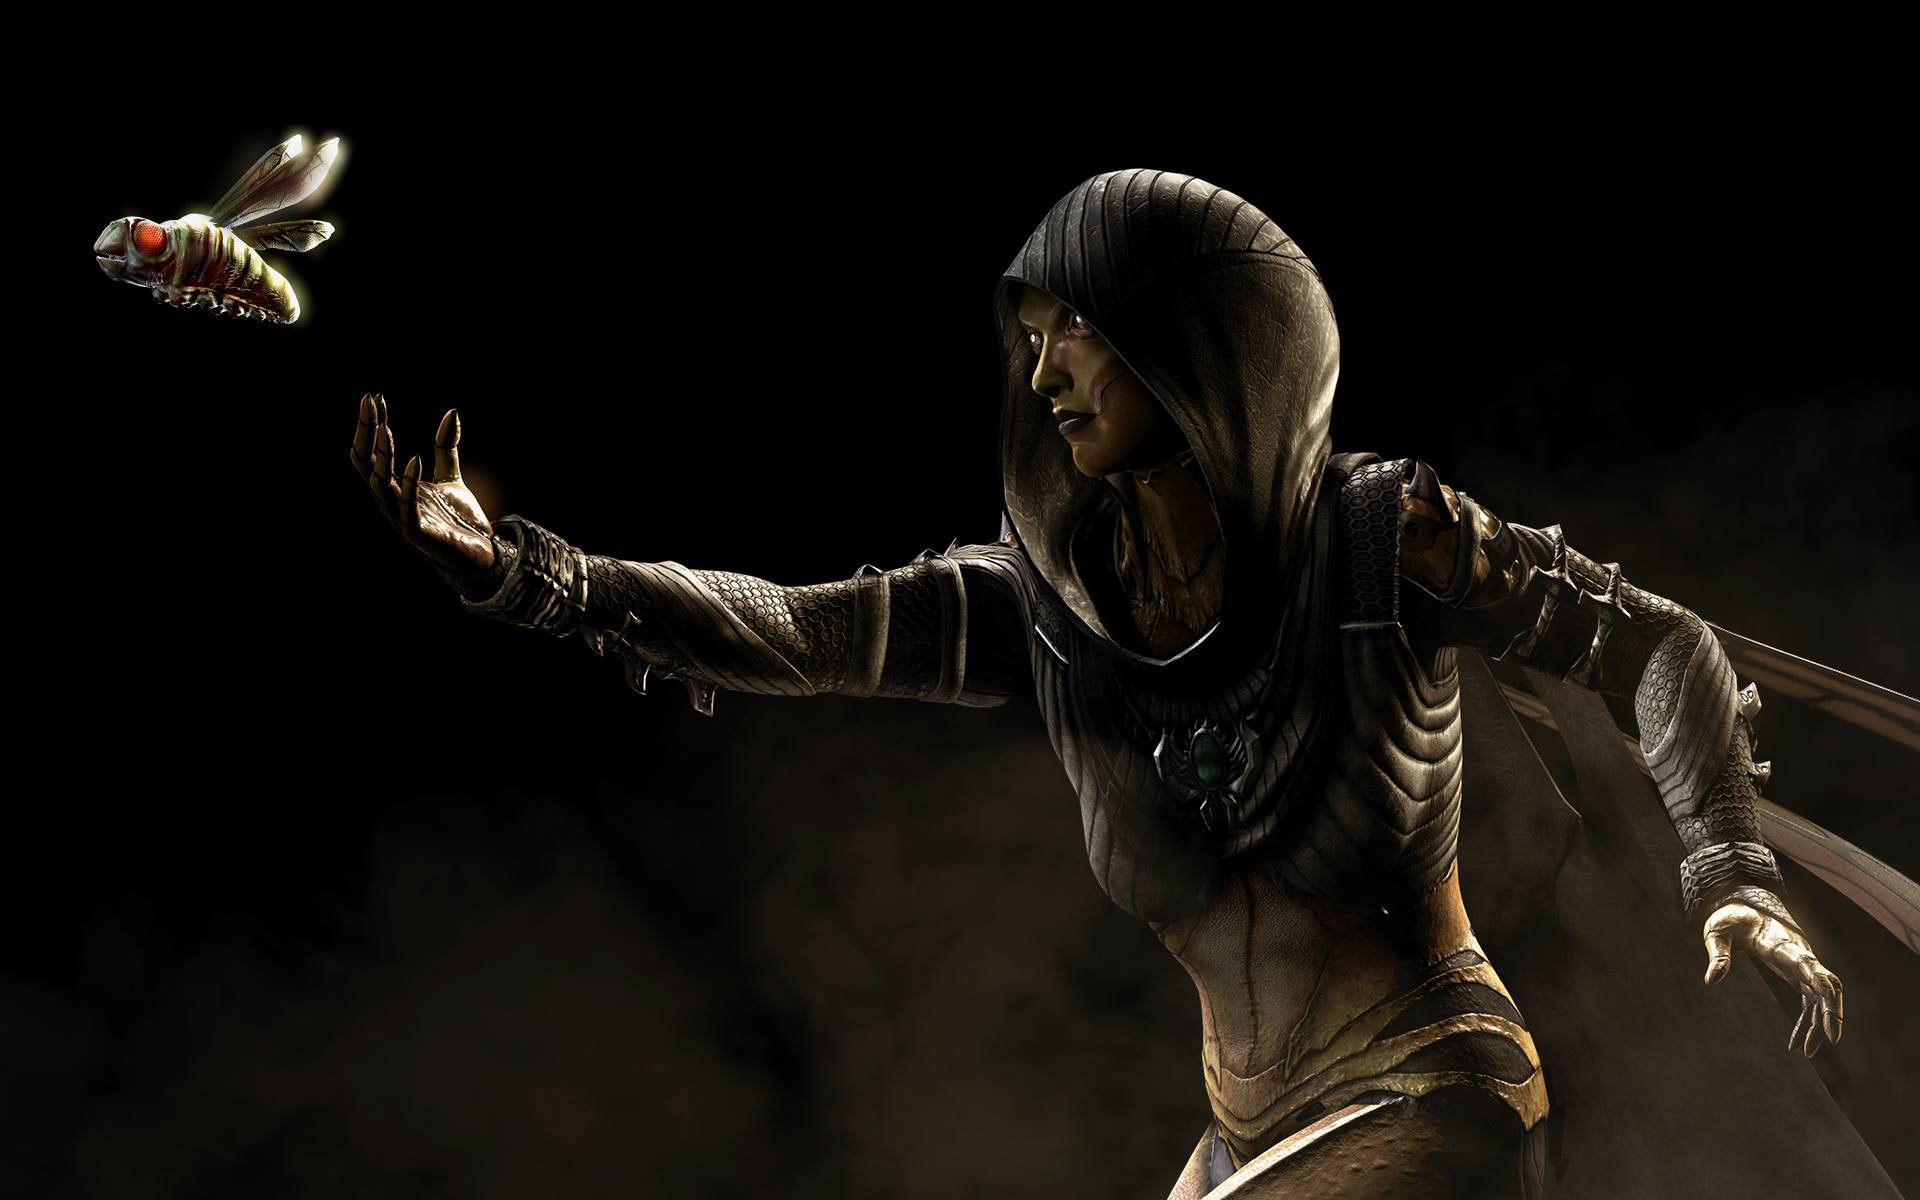 Mortal Kombat X wallpapers featuring oldnew characters image 4 1920x1200